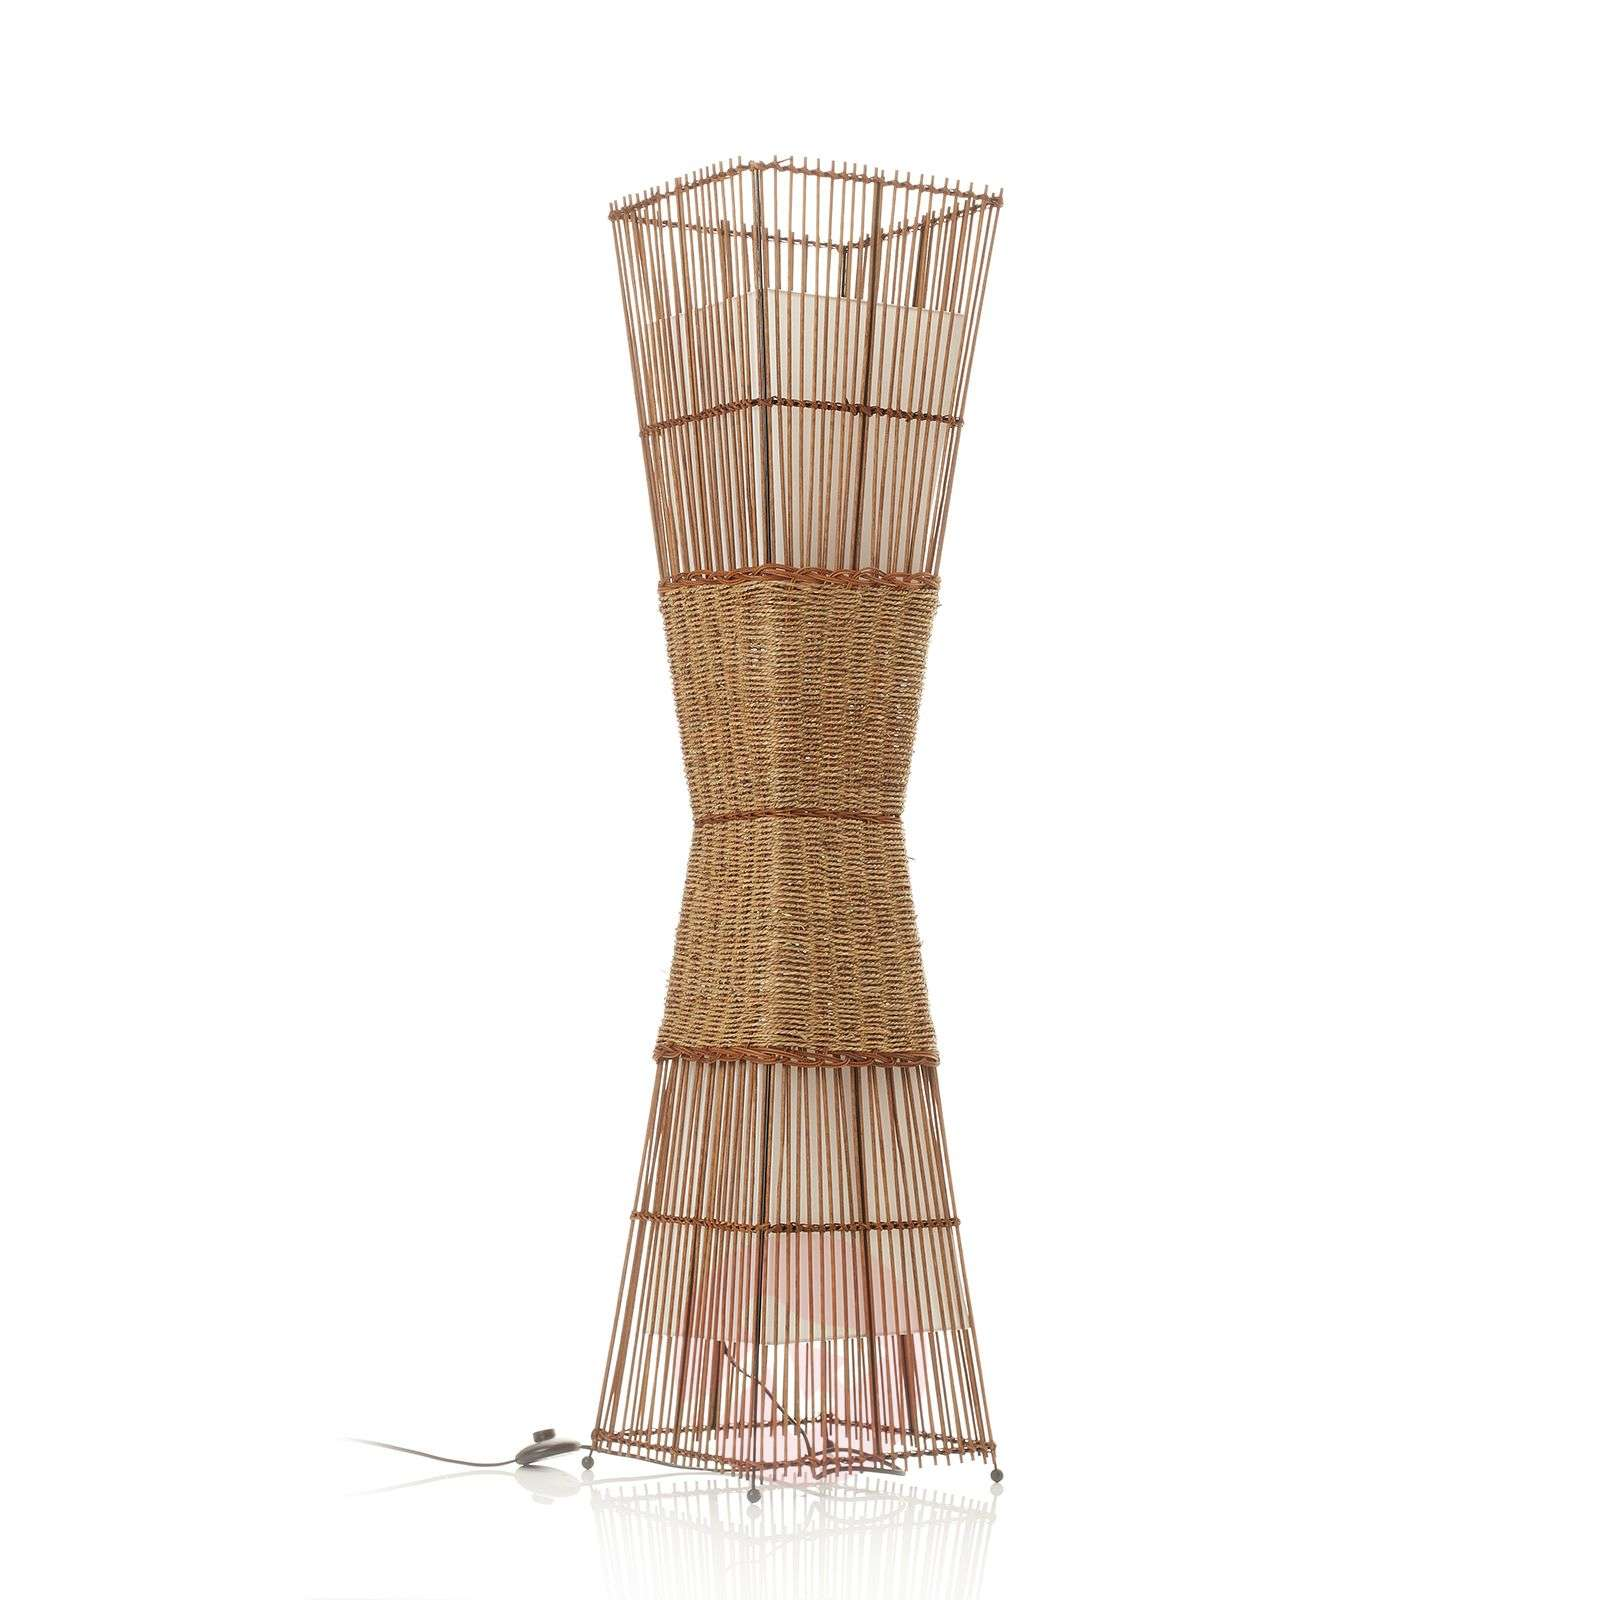 Lampadaire BAMBOO à 2 lampes-7007100-01